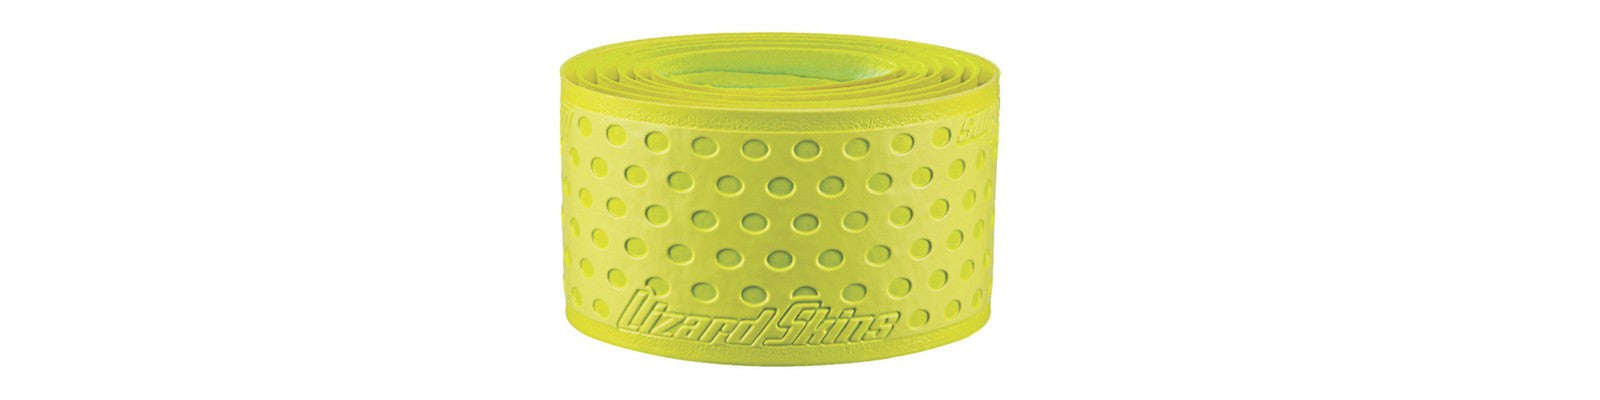 Lizard Skin Bat Wrap - Neon